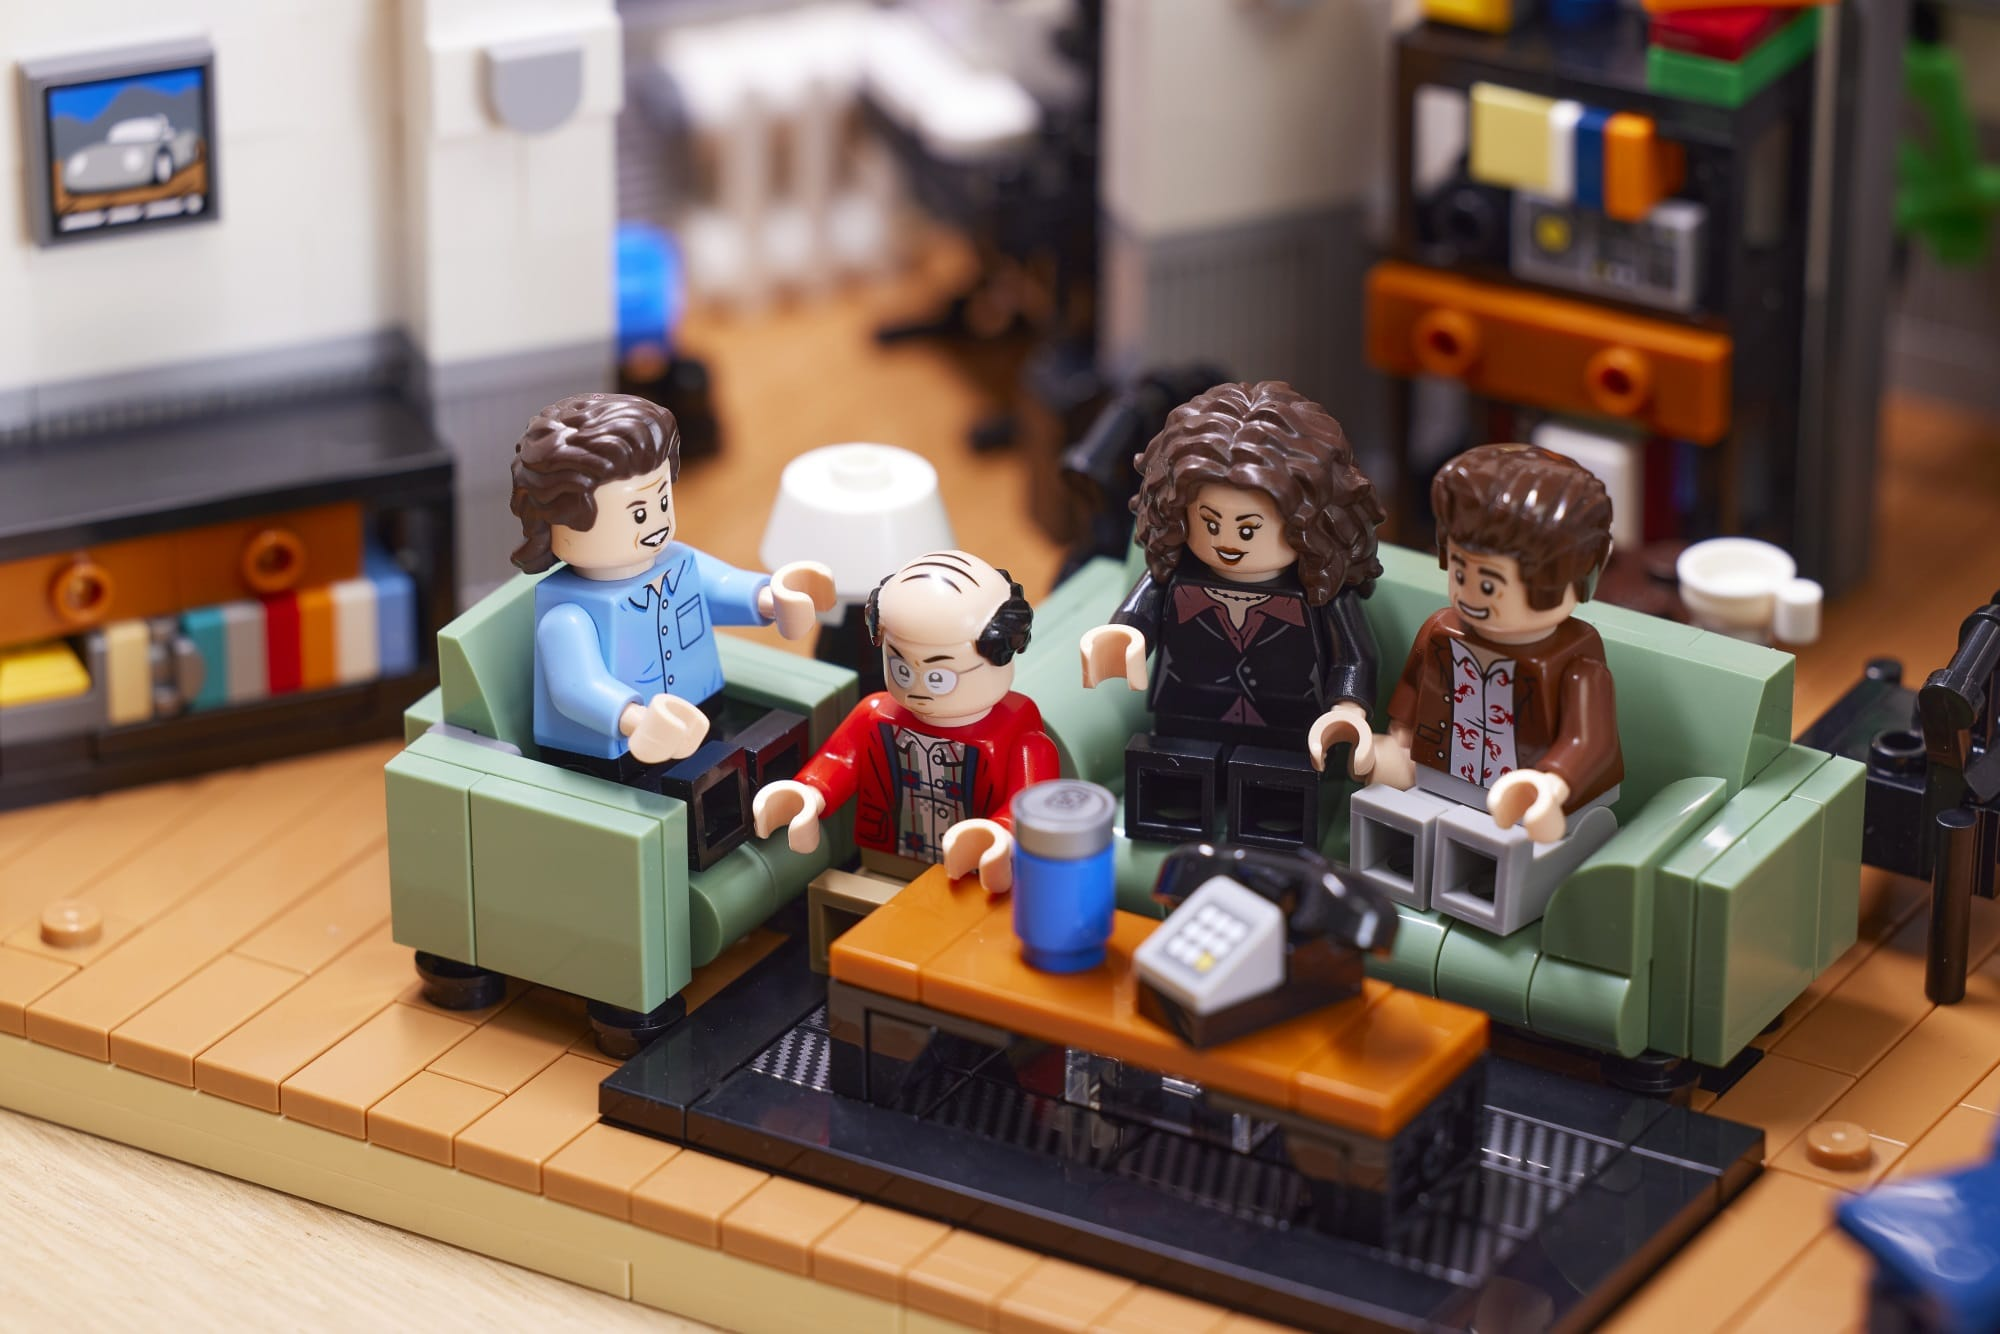 The LEGO Ideas Seinfeld set will transport fans back to '90s New York City 17